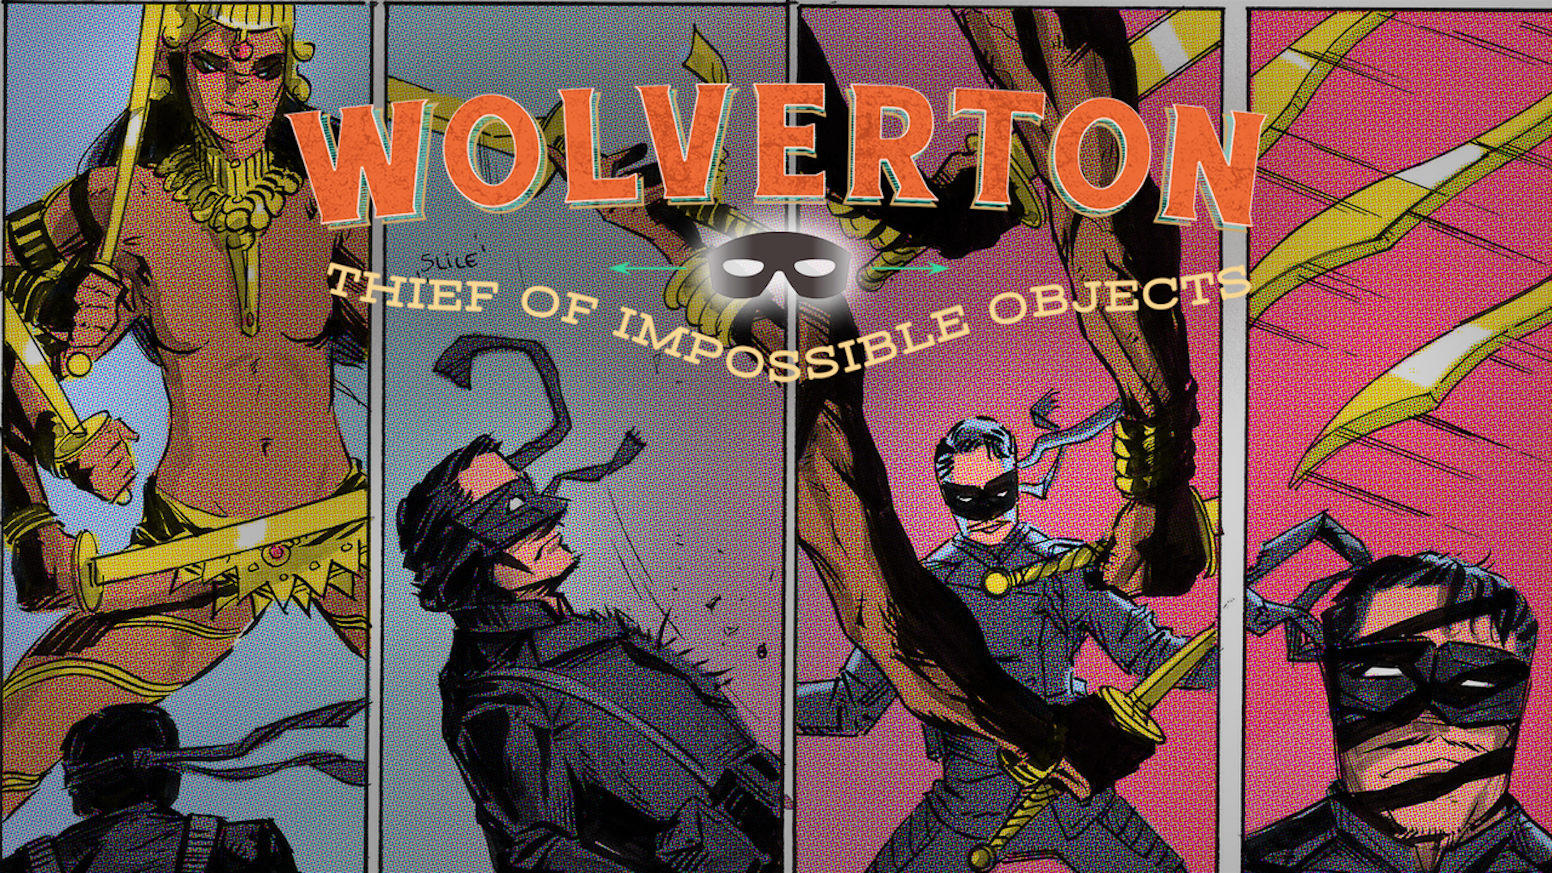 Wolverton, Thief of Impossible Objects Issue #2 by Michael